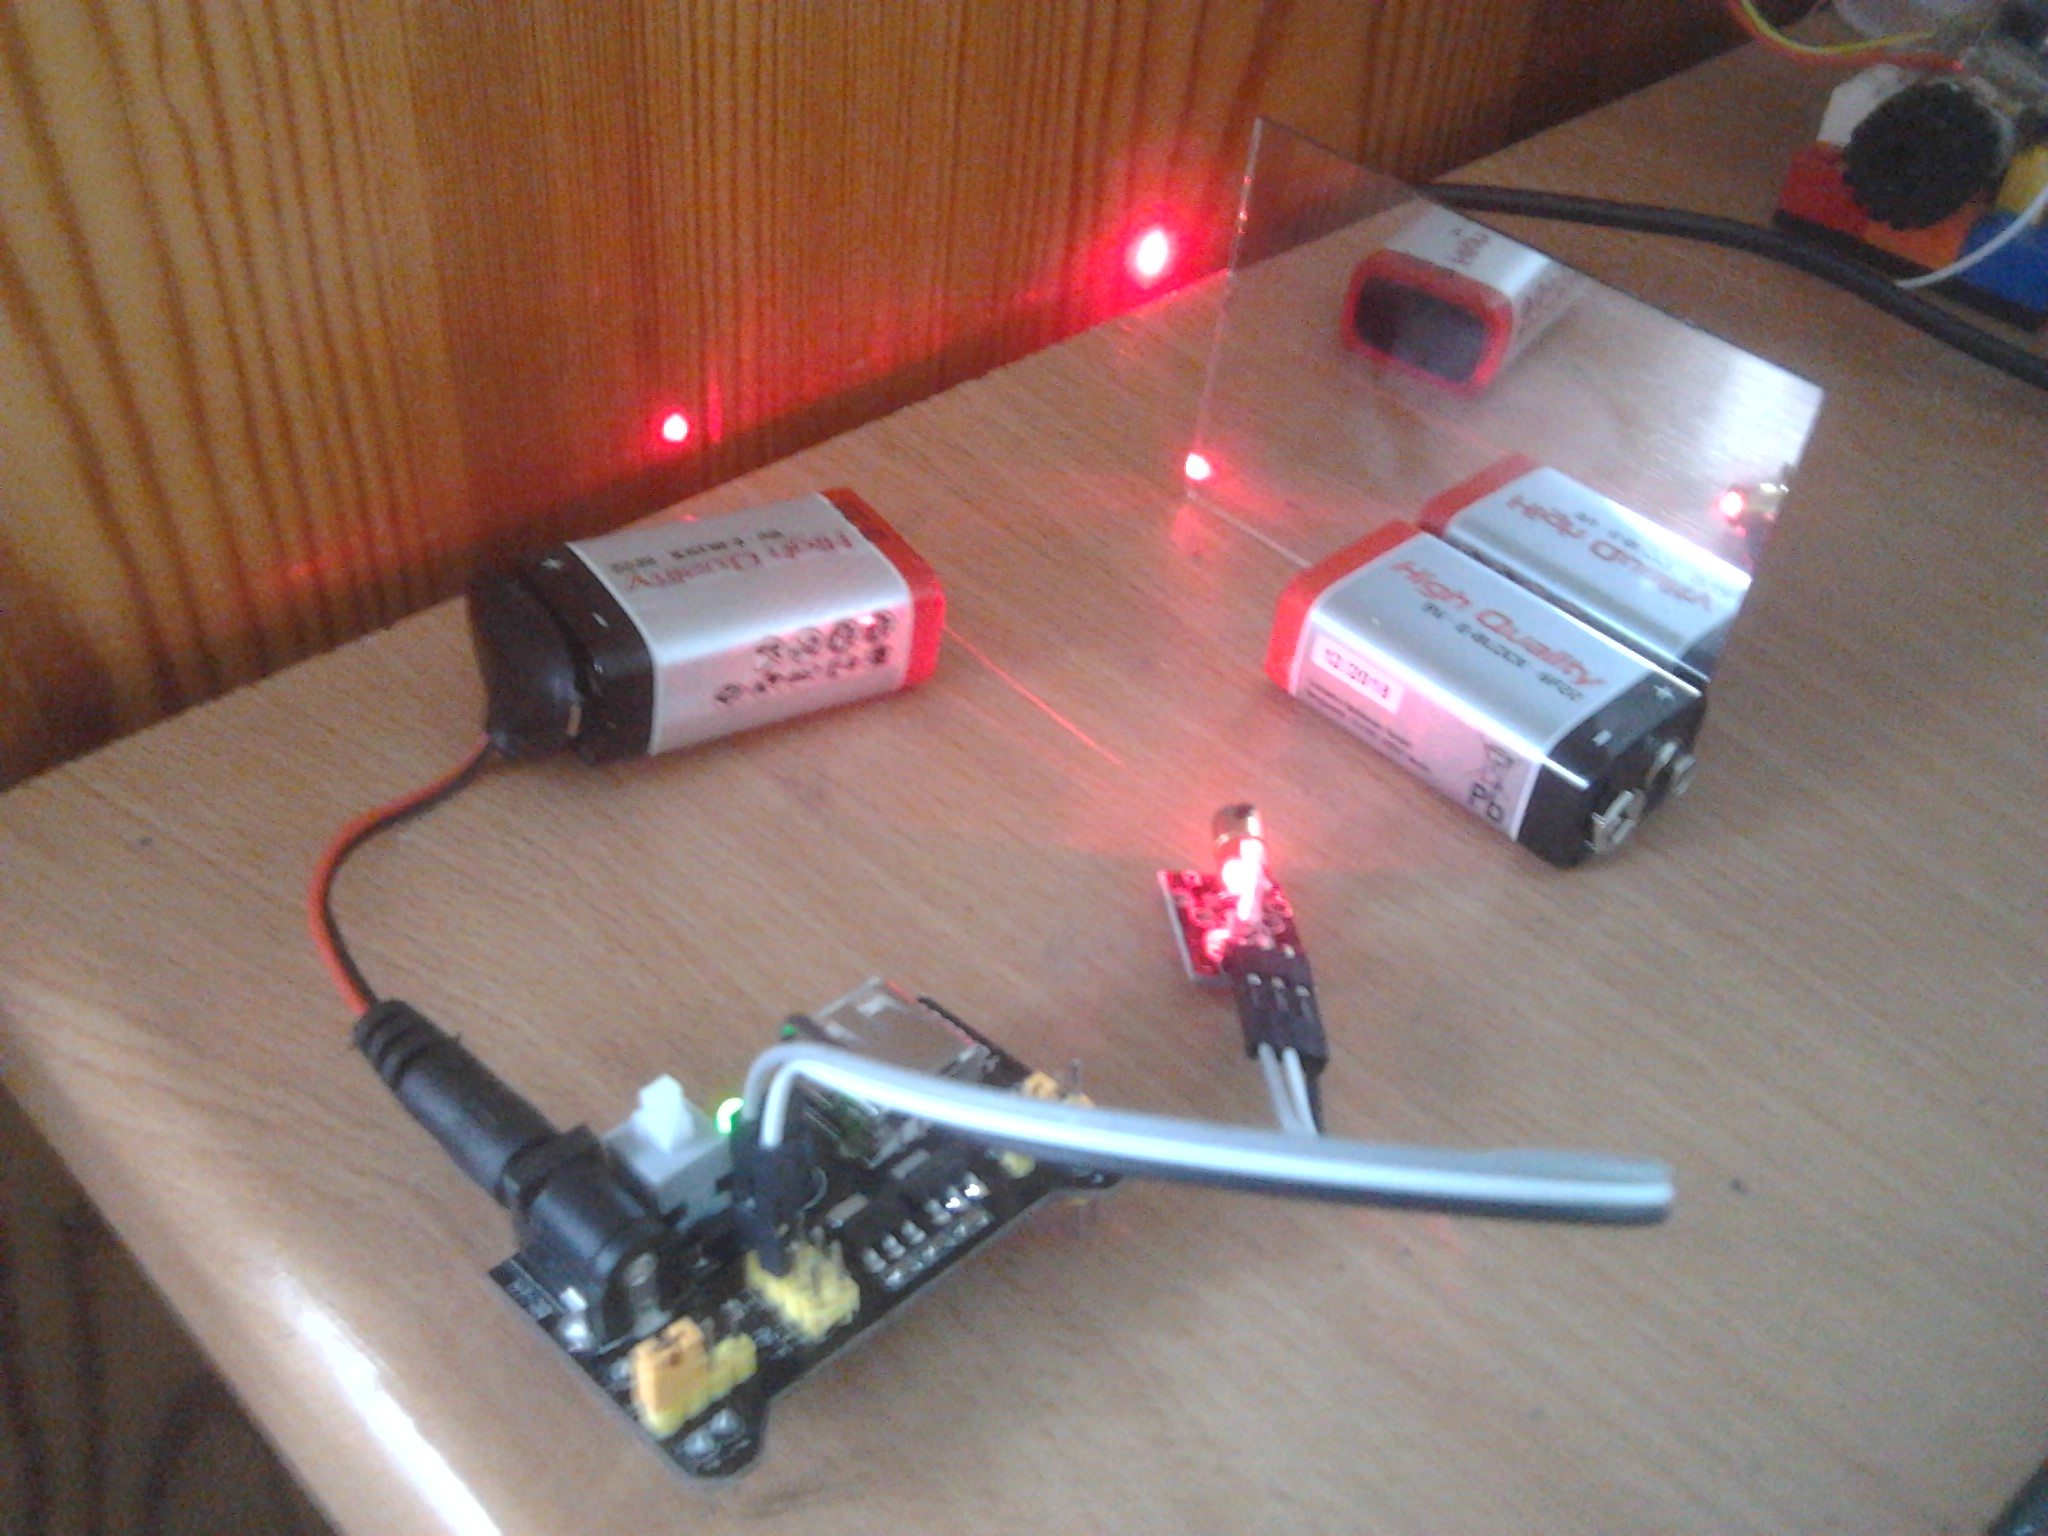 Measuring Speed of Light with Arduinos and no moving parts